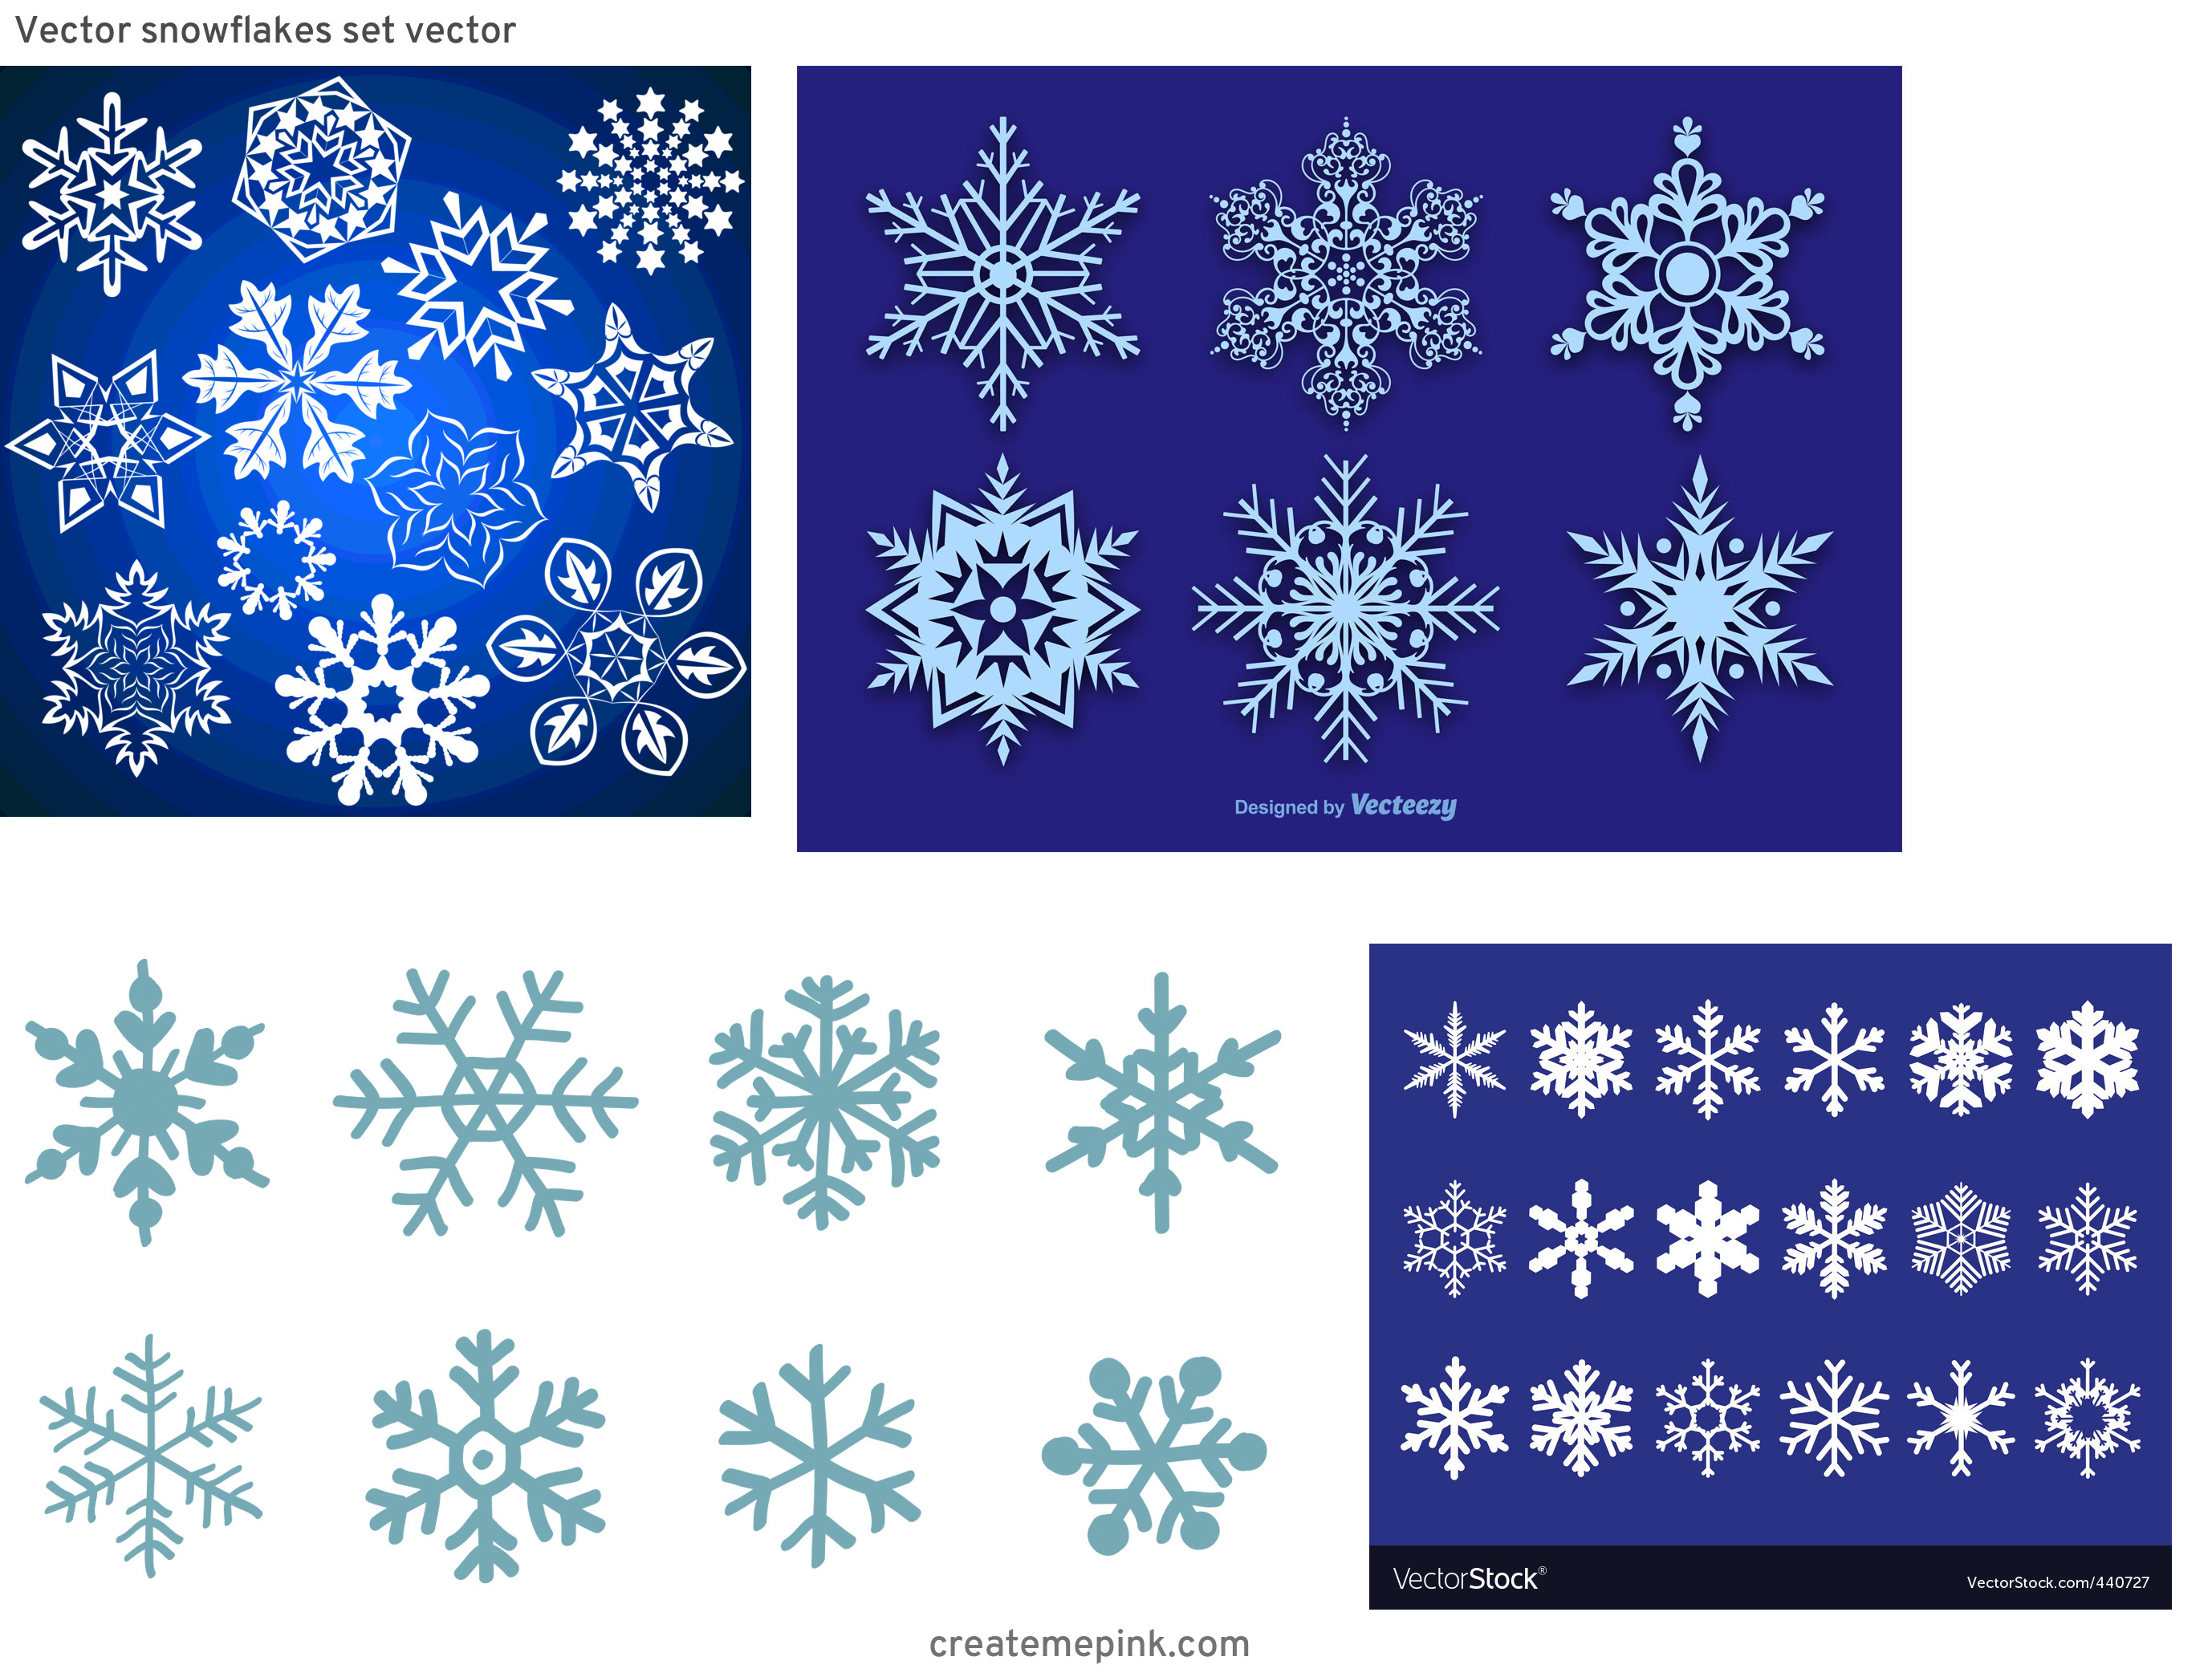 Free Vector Snow Flakes: Vector Snowflakes Set Vector